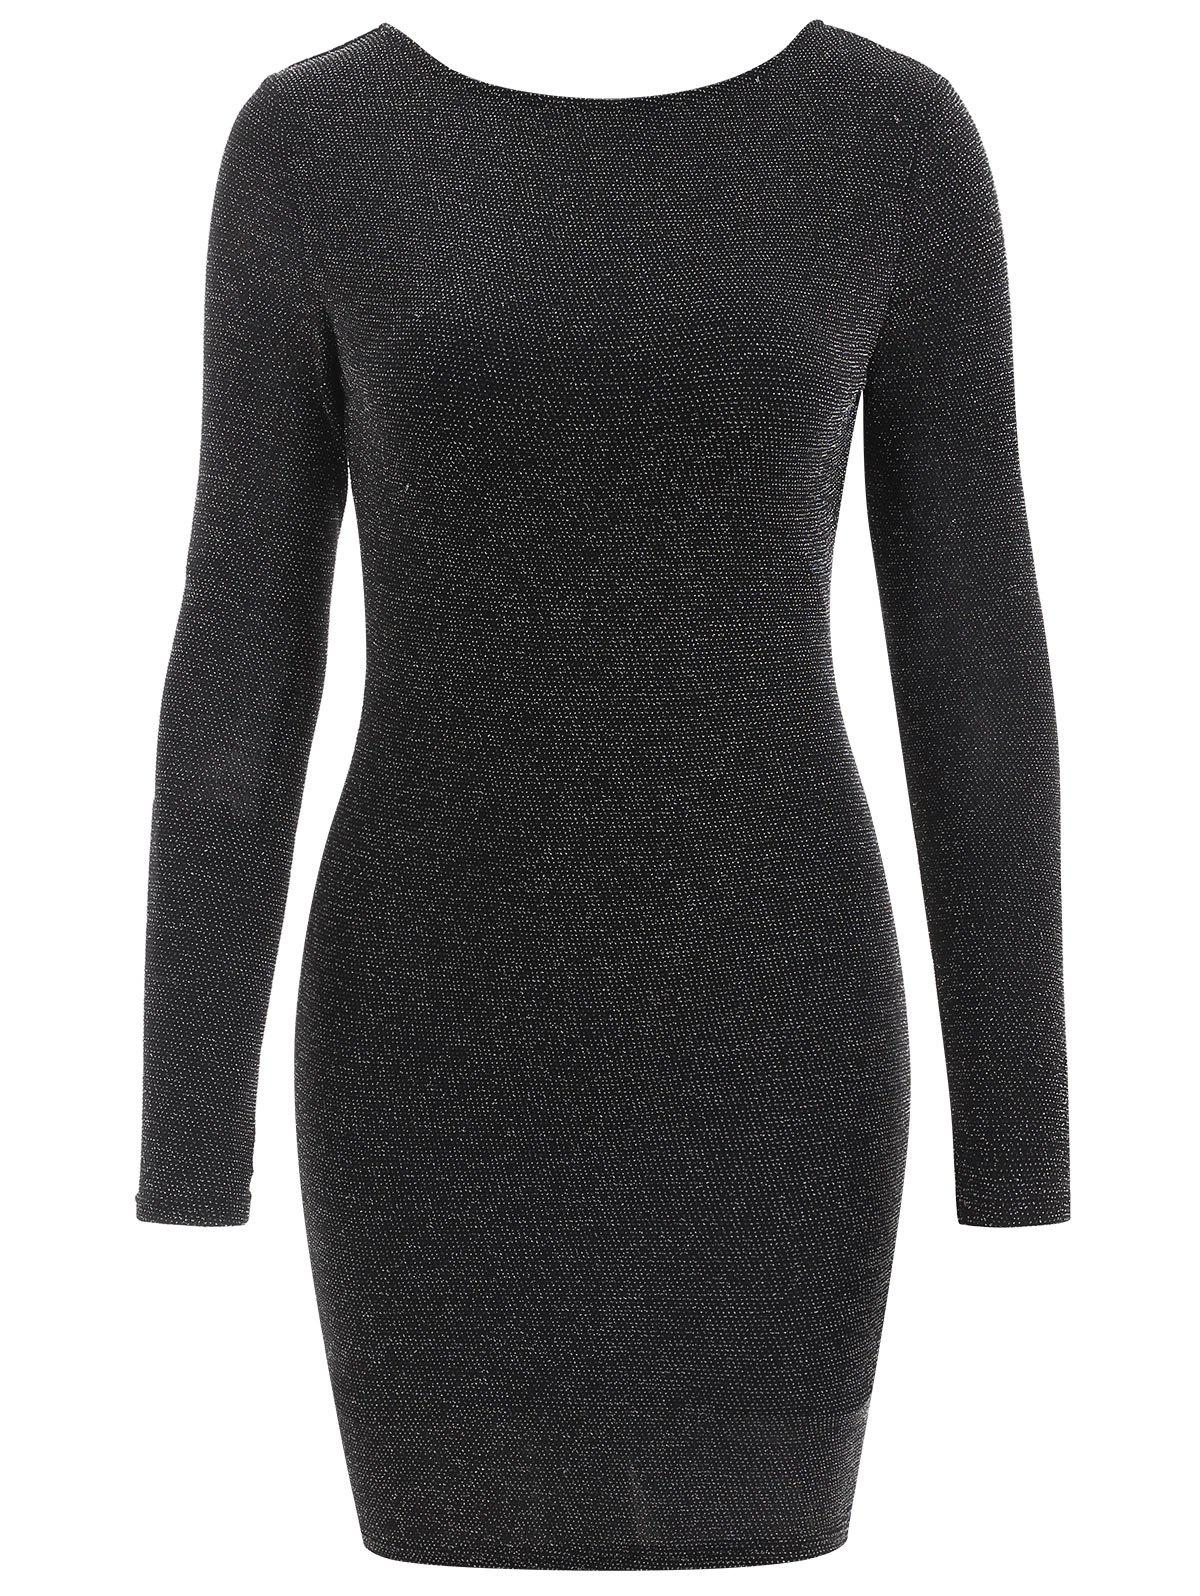 Backless Sparkly Bodycon Dress - BLACK M